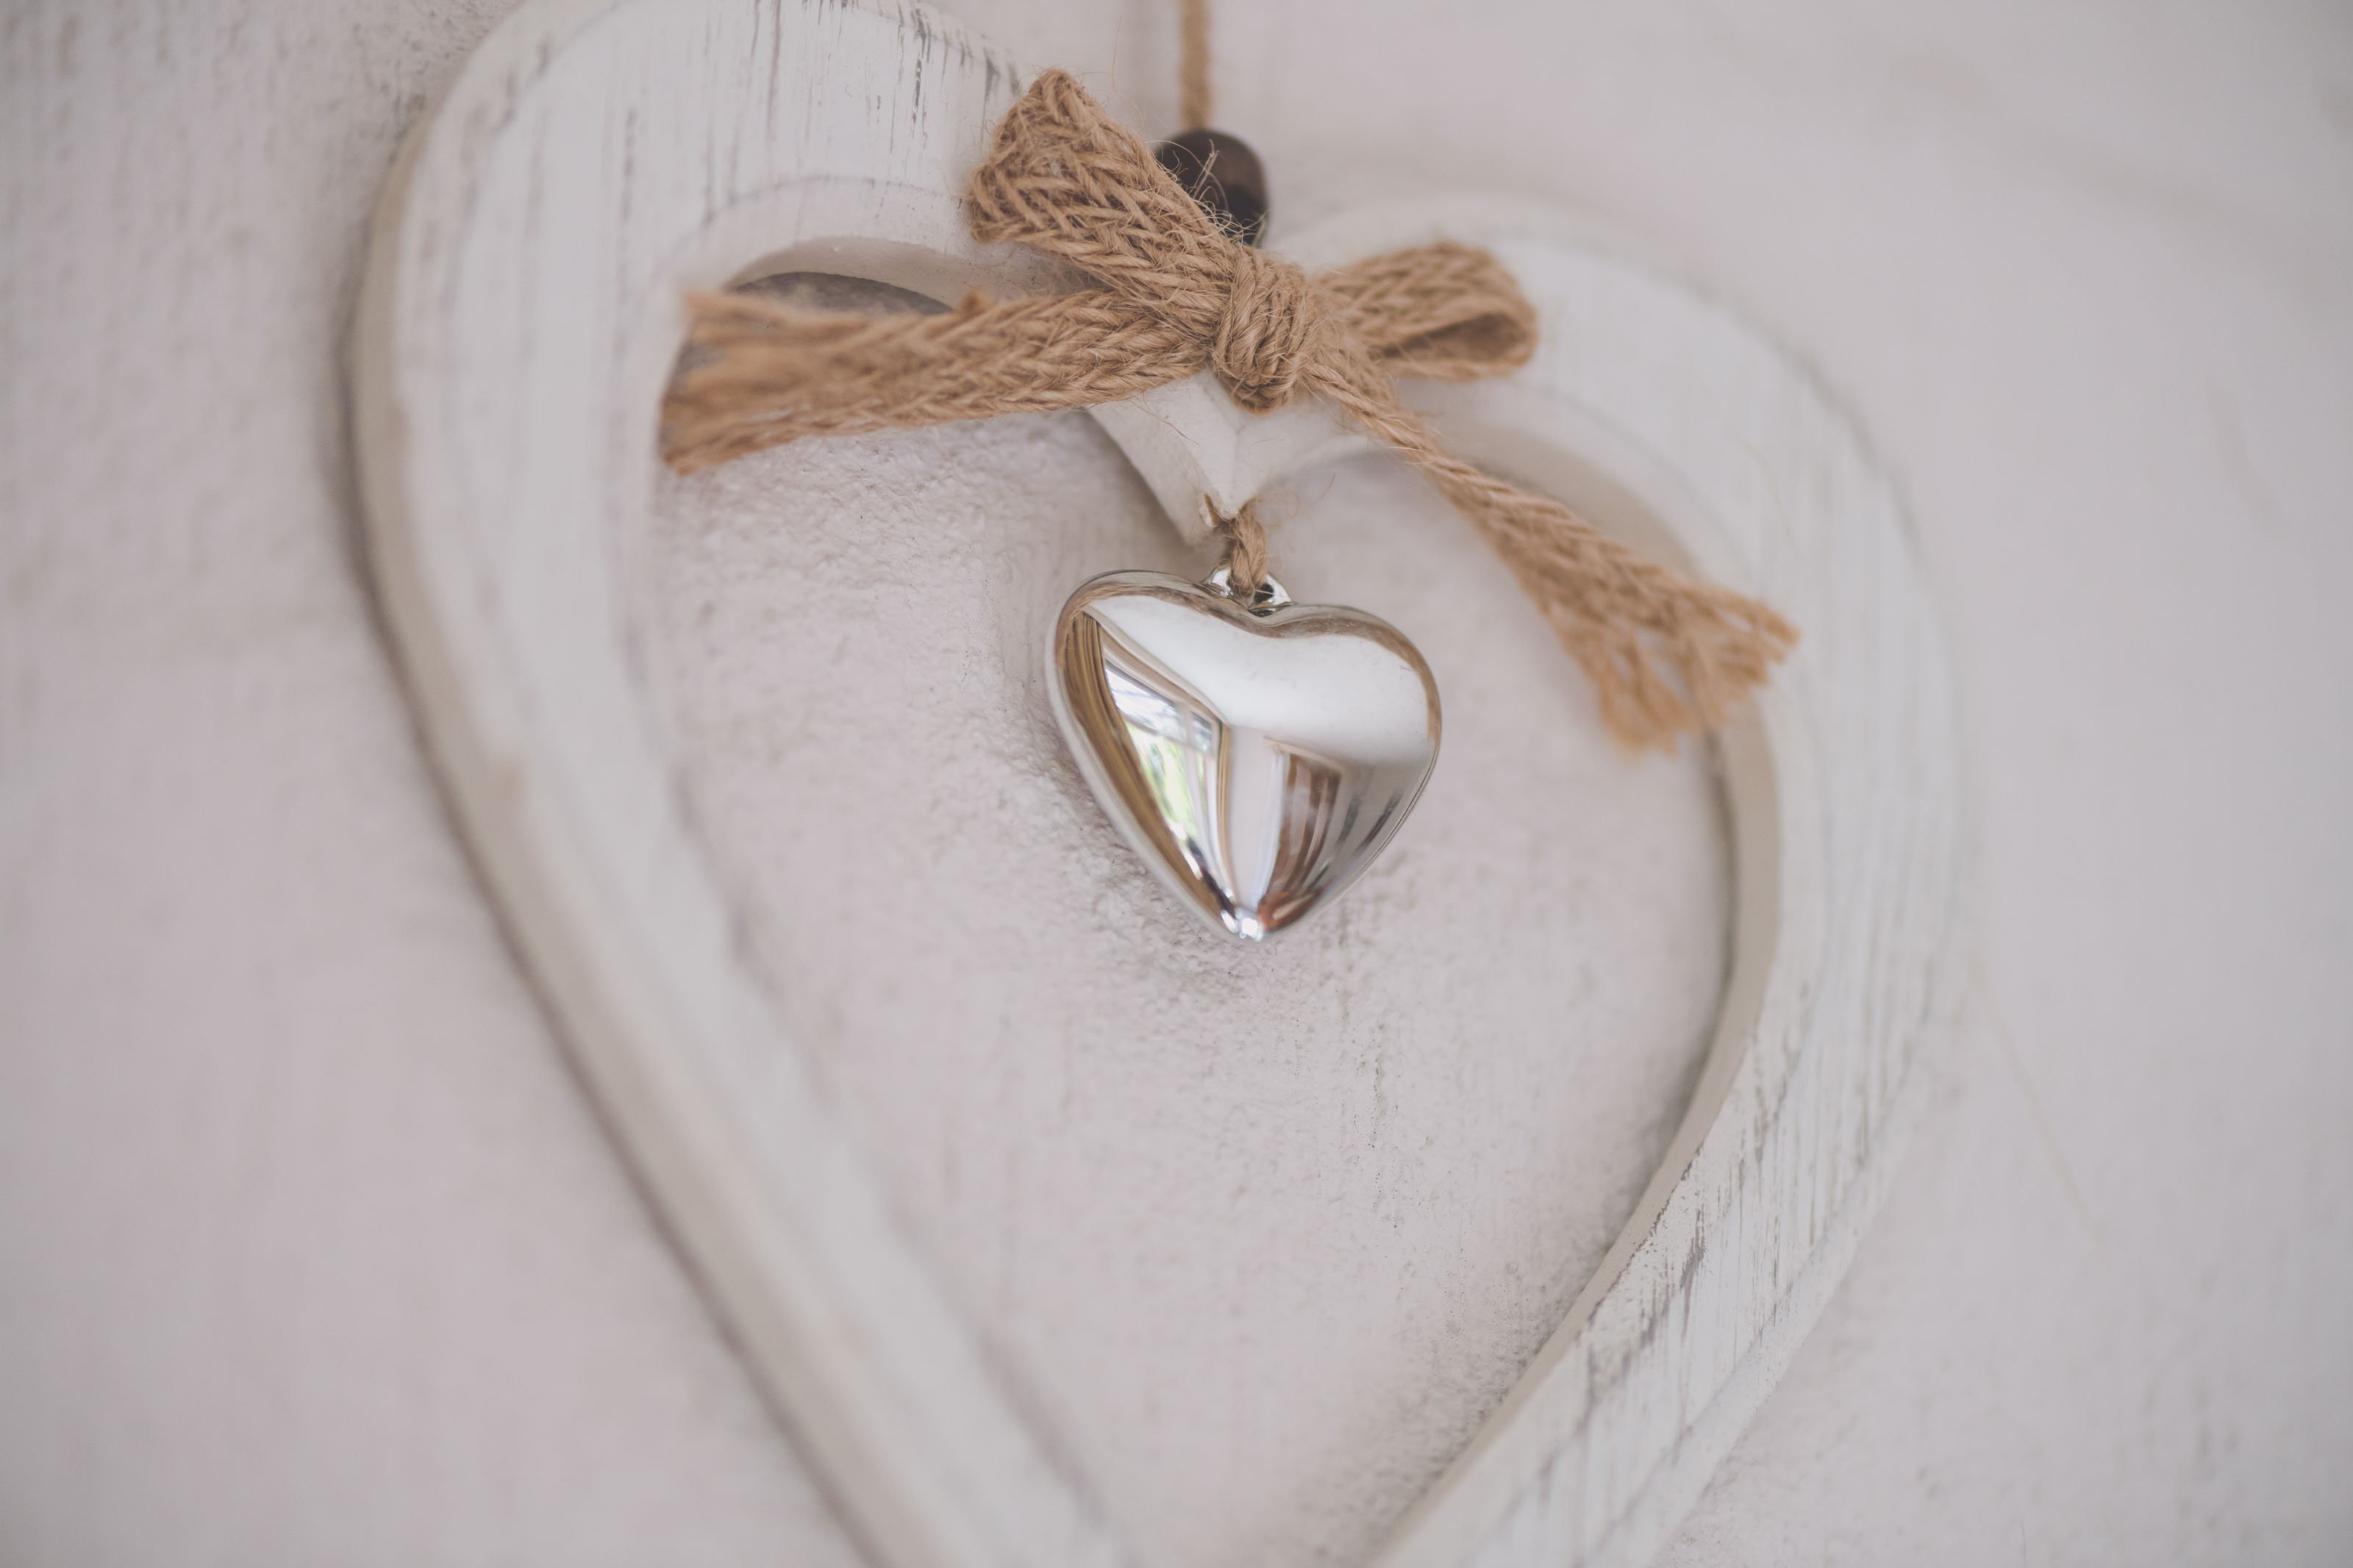 Wedding Photography Melbourne by Pause The Moment - A love heart decoration at a bride's house on her wedding day - Paringa Estate Wedding Photographer